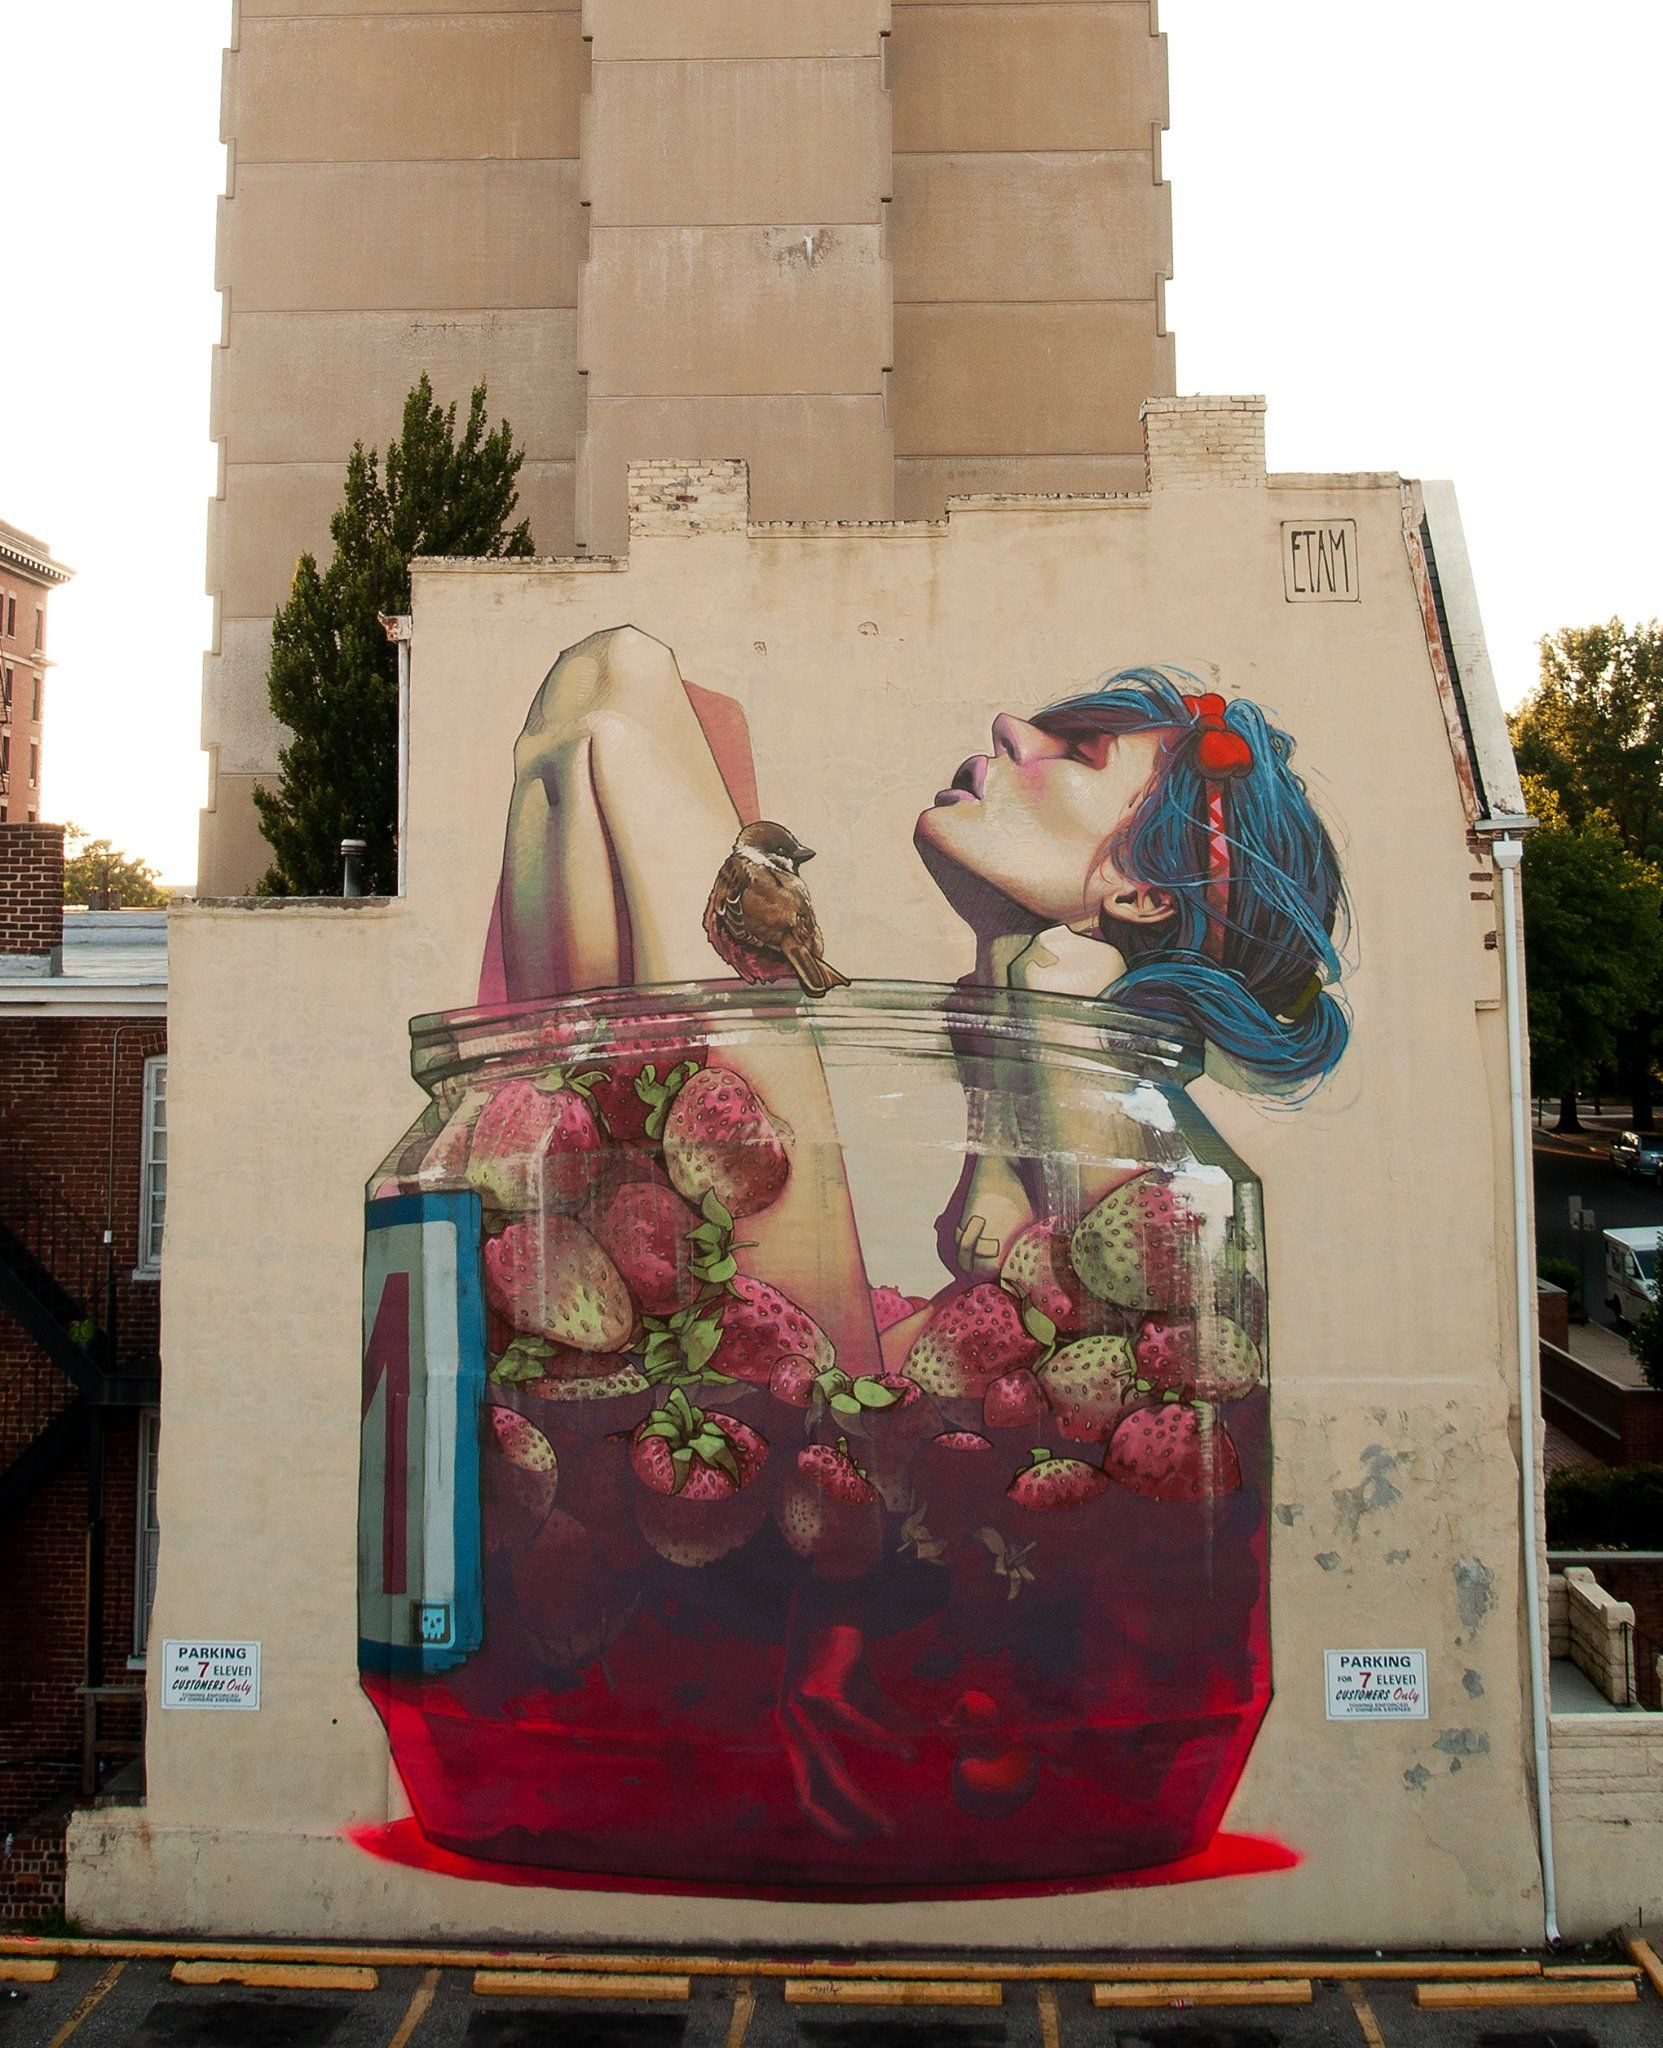 Once More: Street Art by 'Etam Cru' Turn Drab Facades into Eye-Popping Imagery